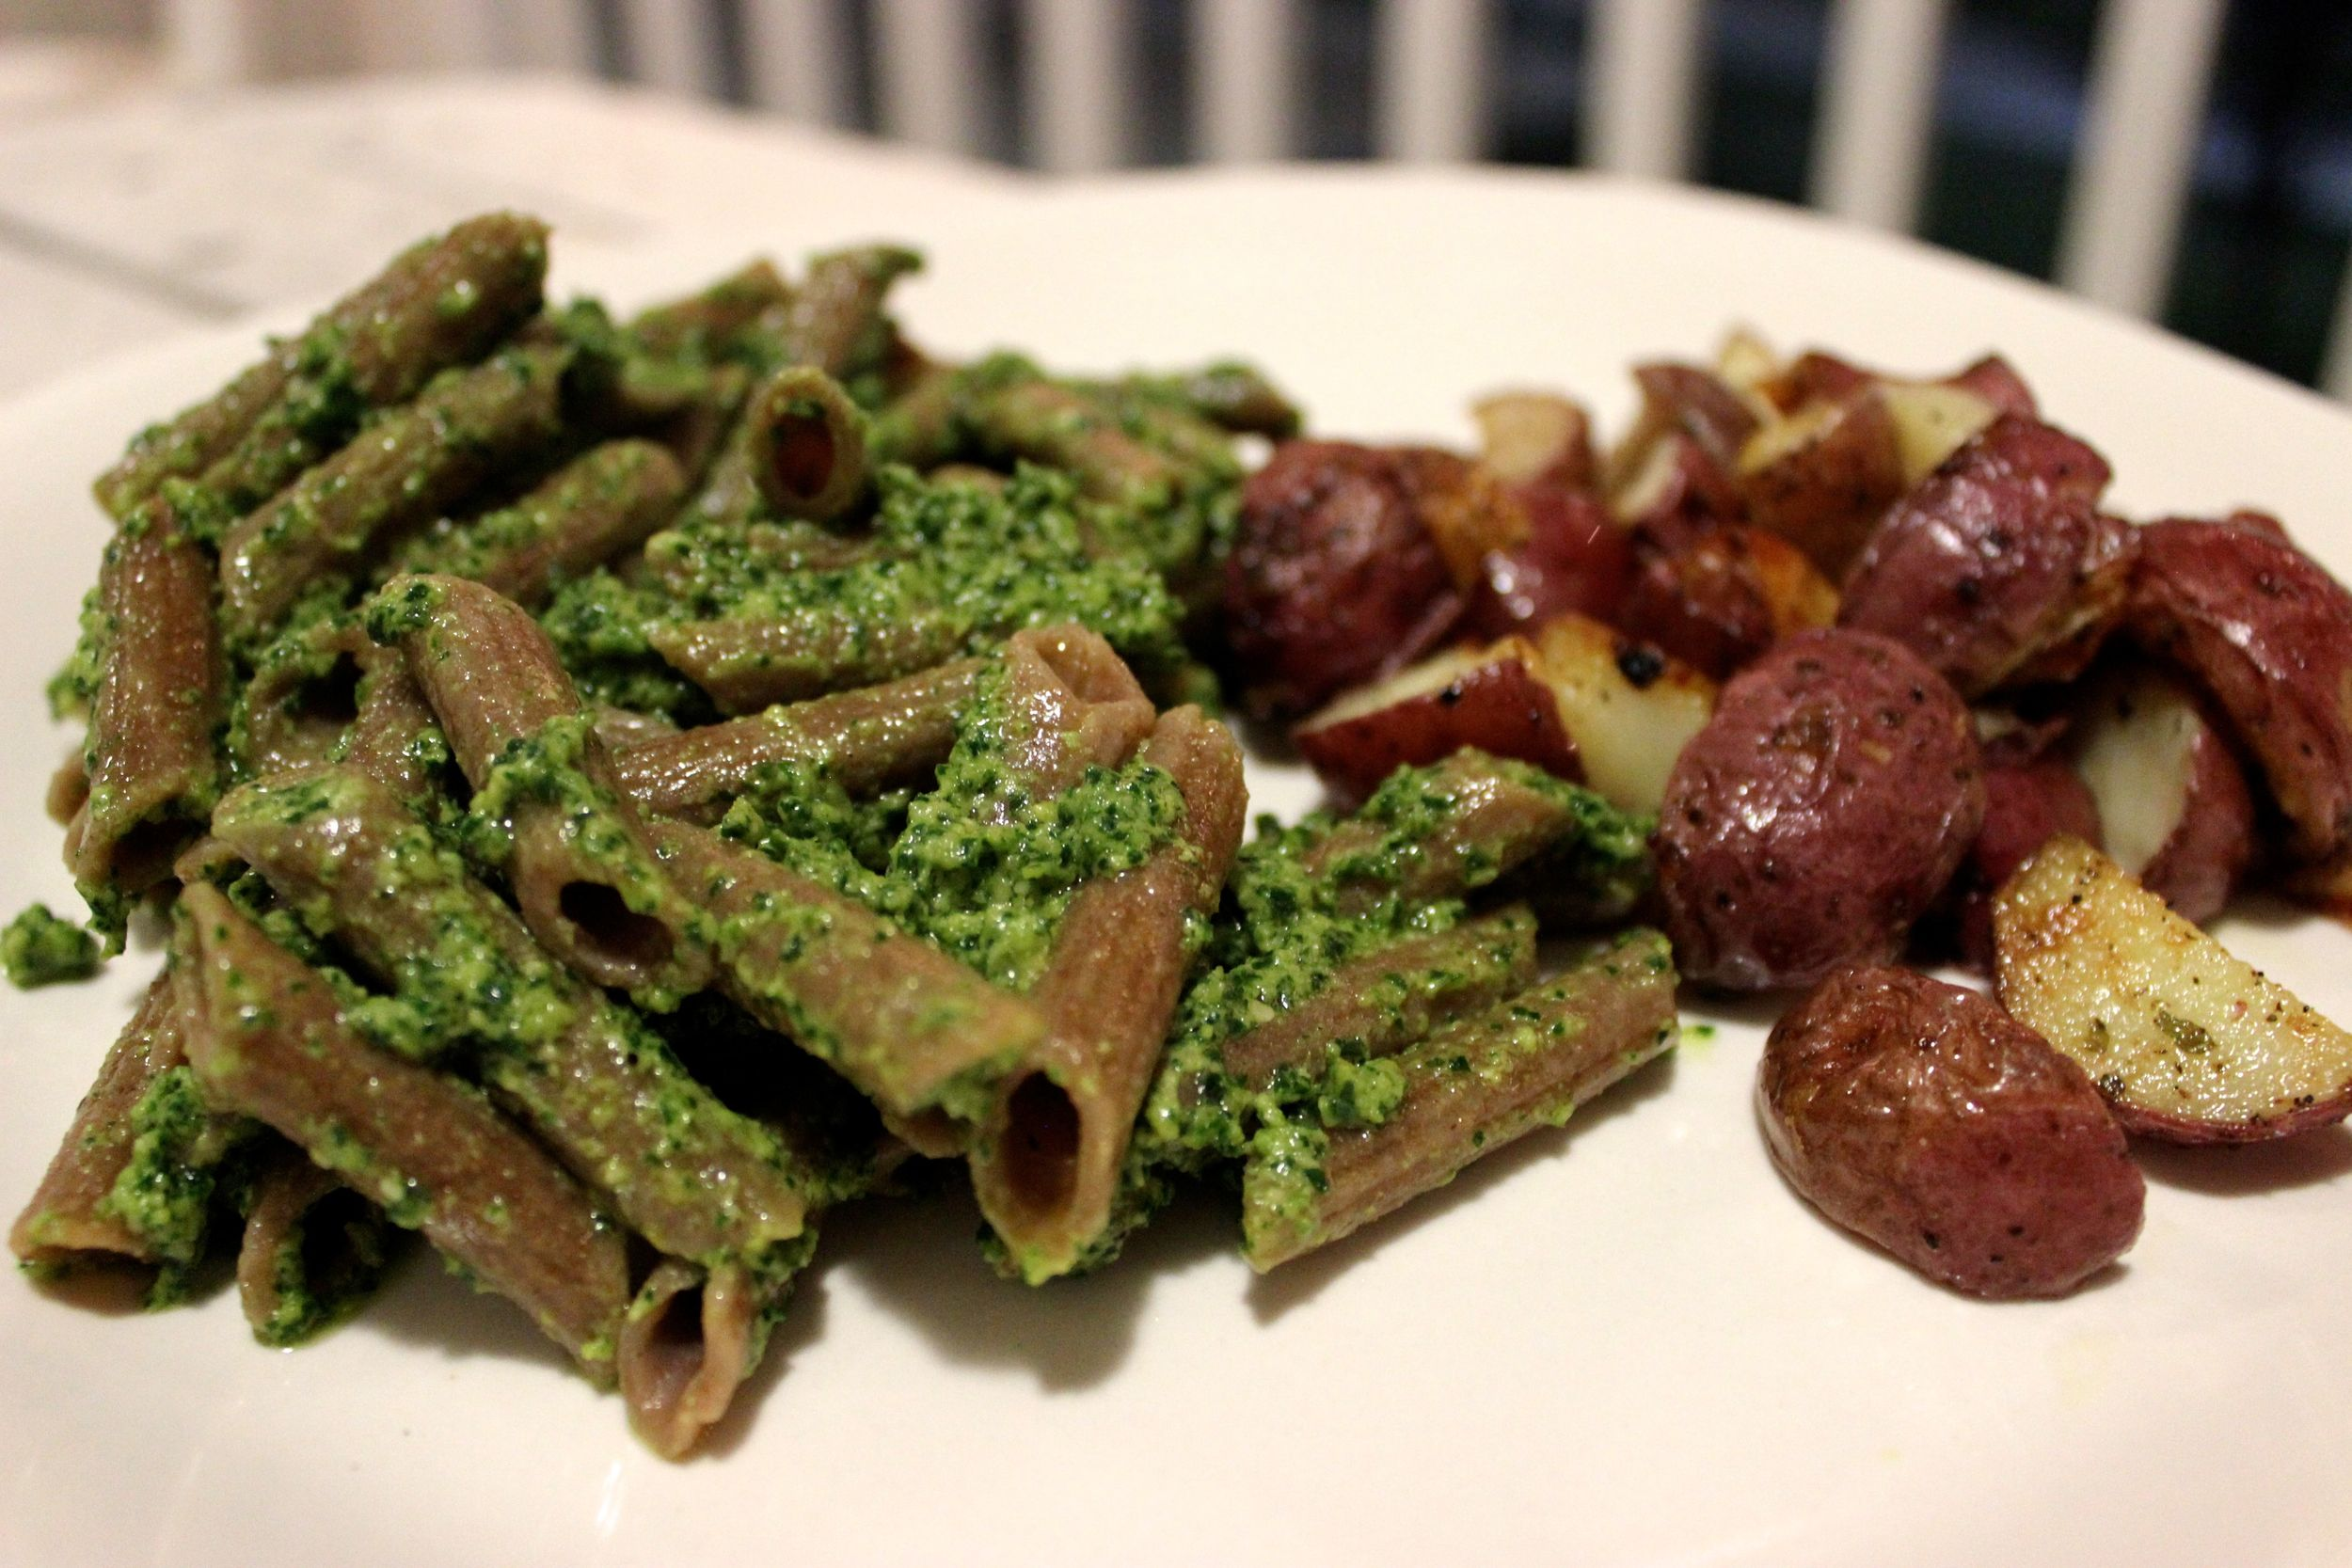 kale pesto and potatoes